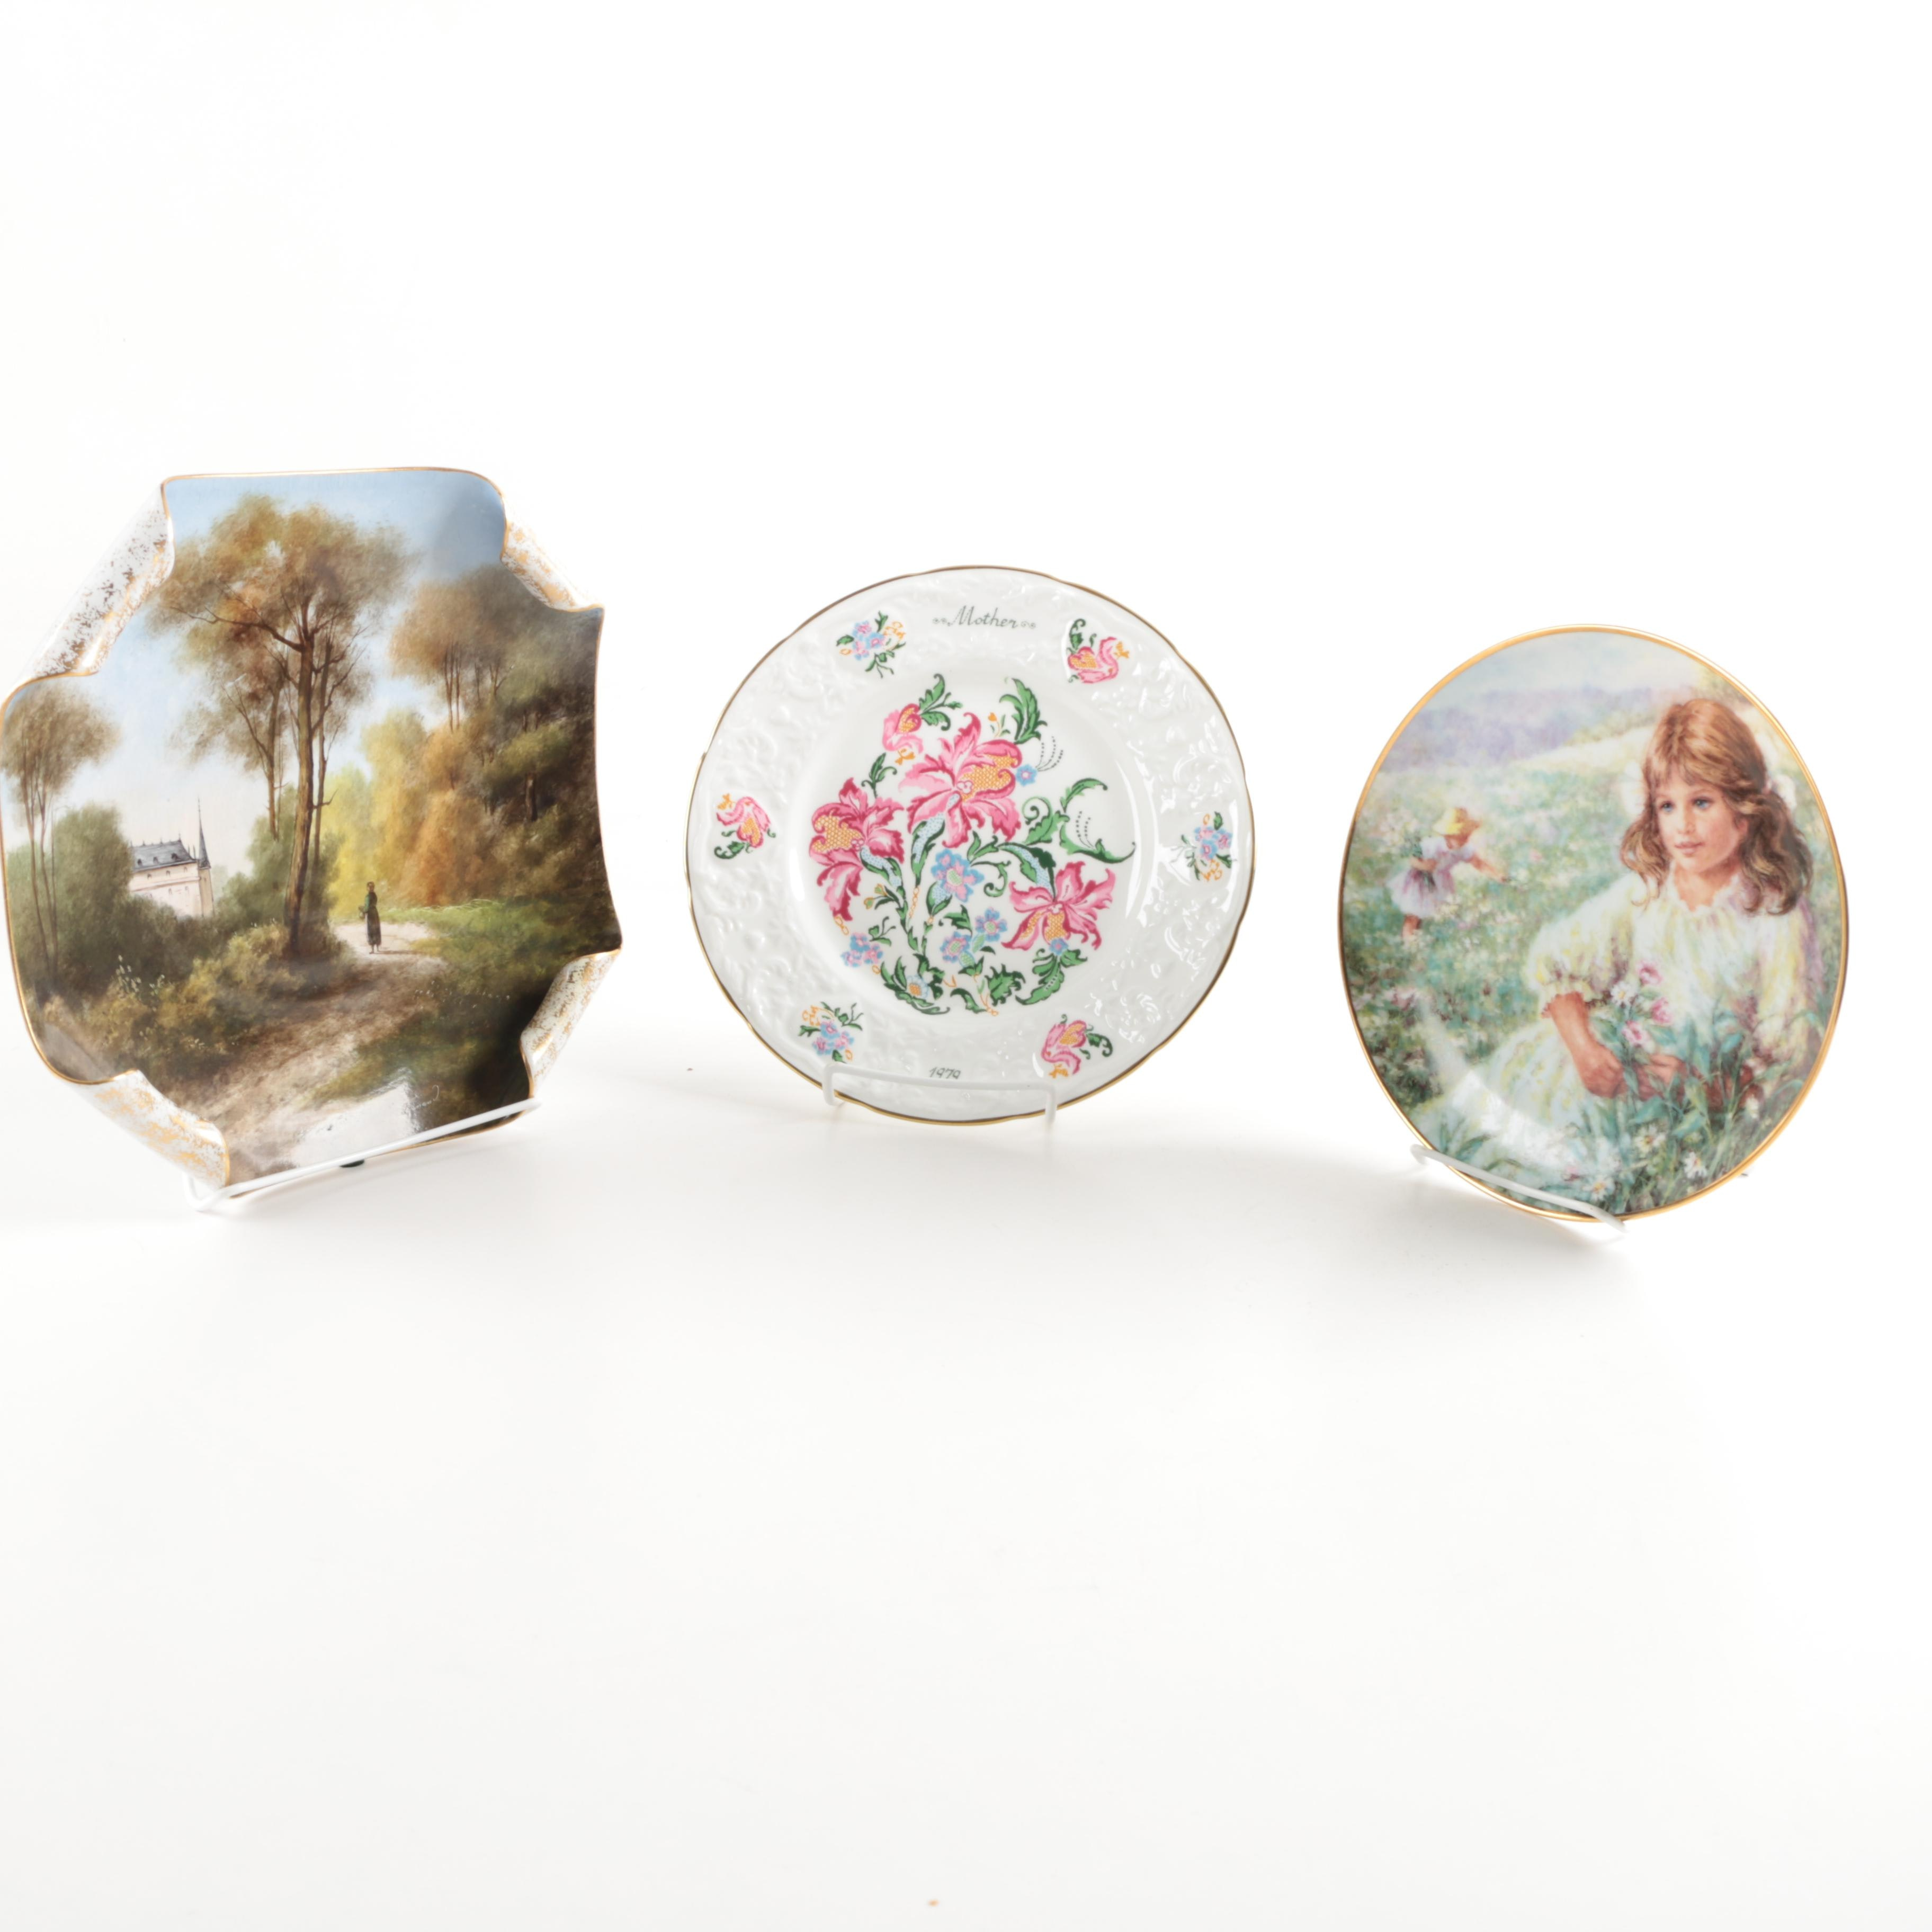 Assortment of Collectible Plates